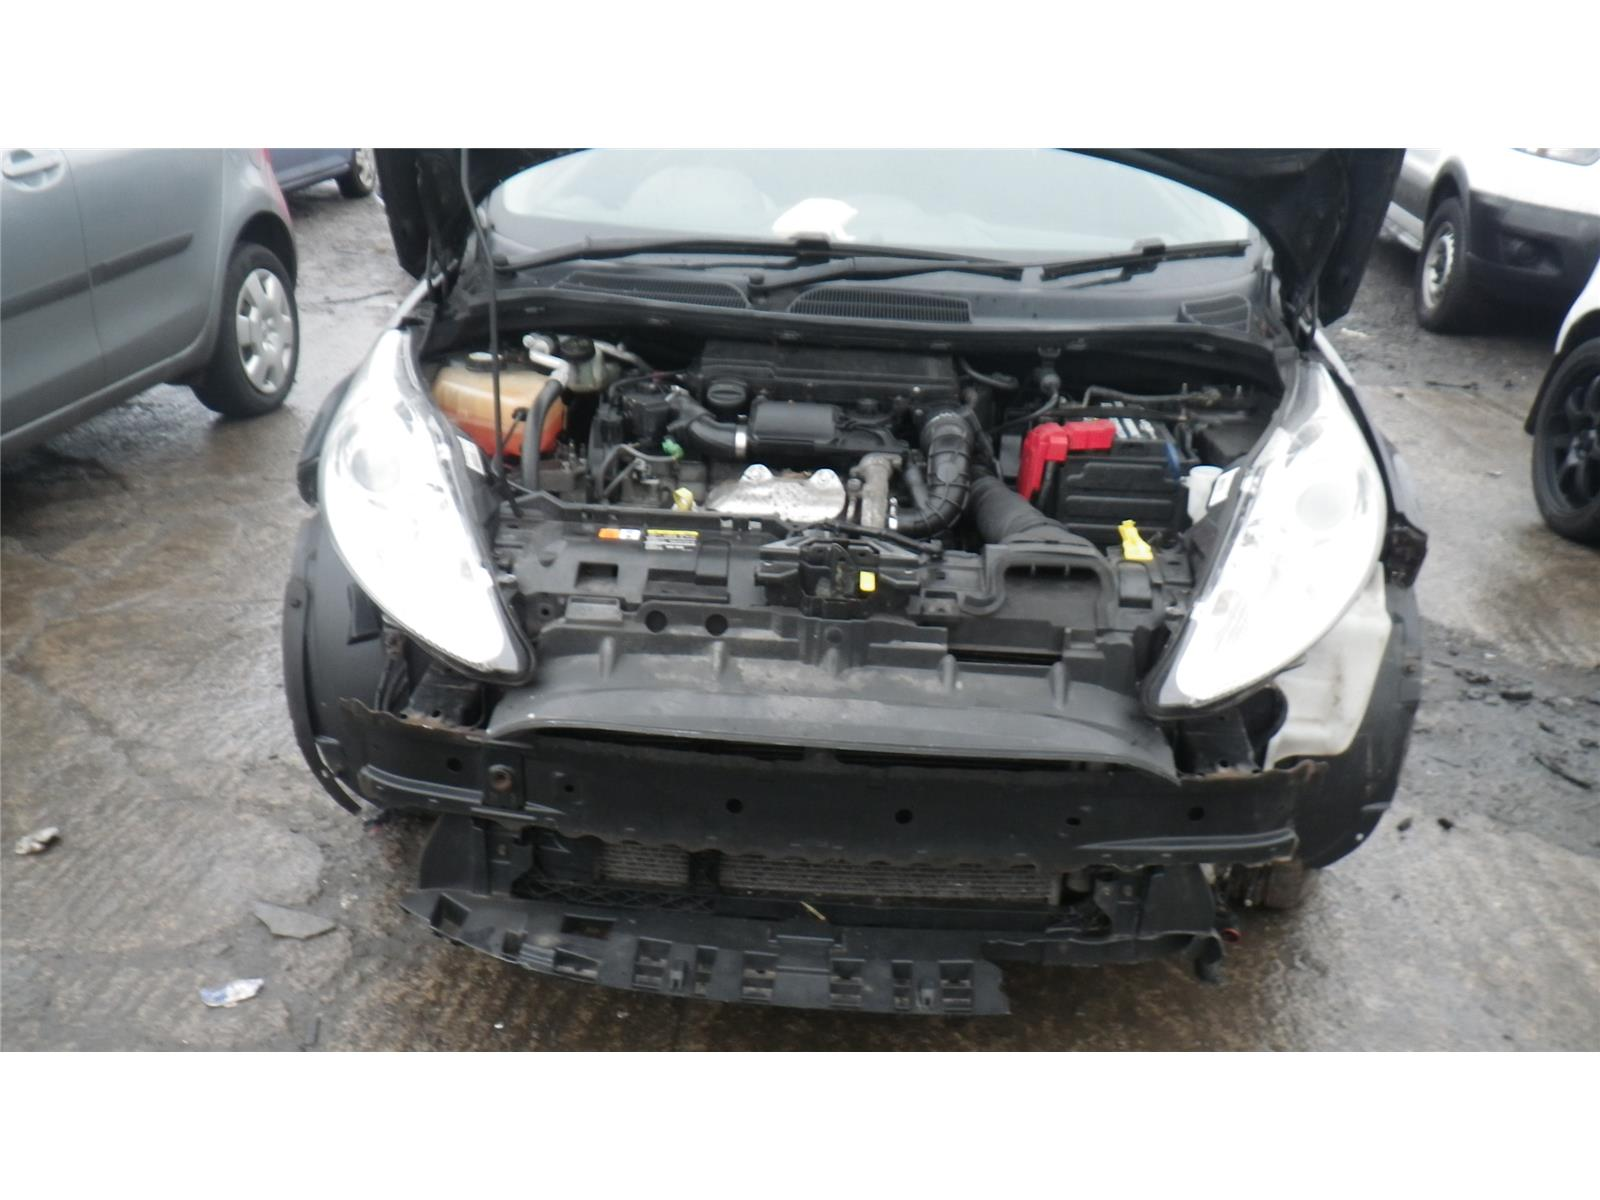 Ford Fiesta 2009 To 2012 Book Pack (Diesel   Manual) for sale from ... b884379f739f